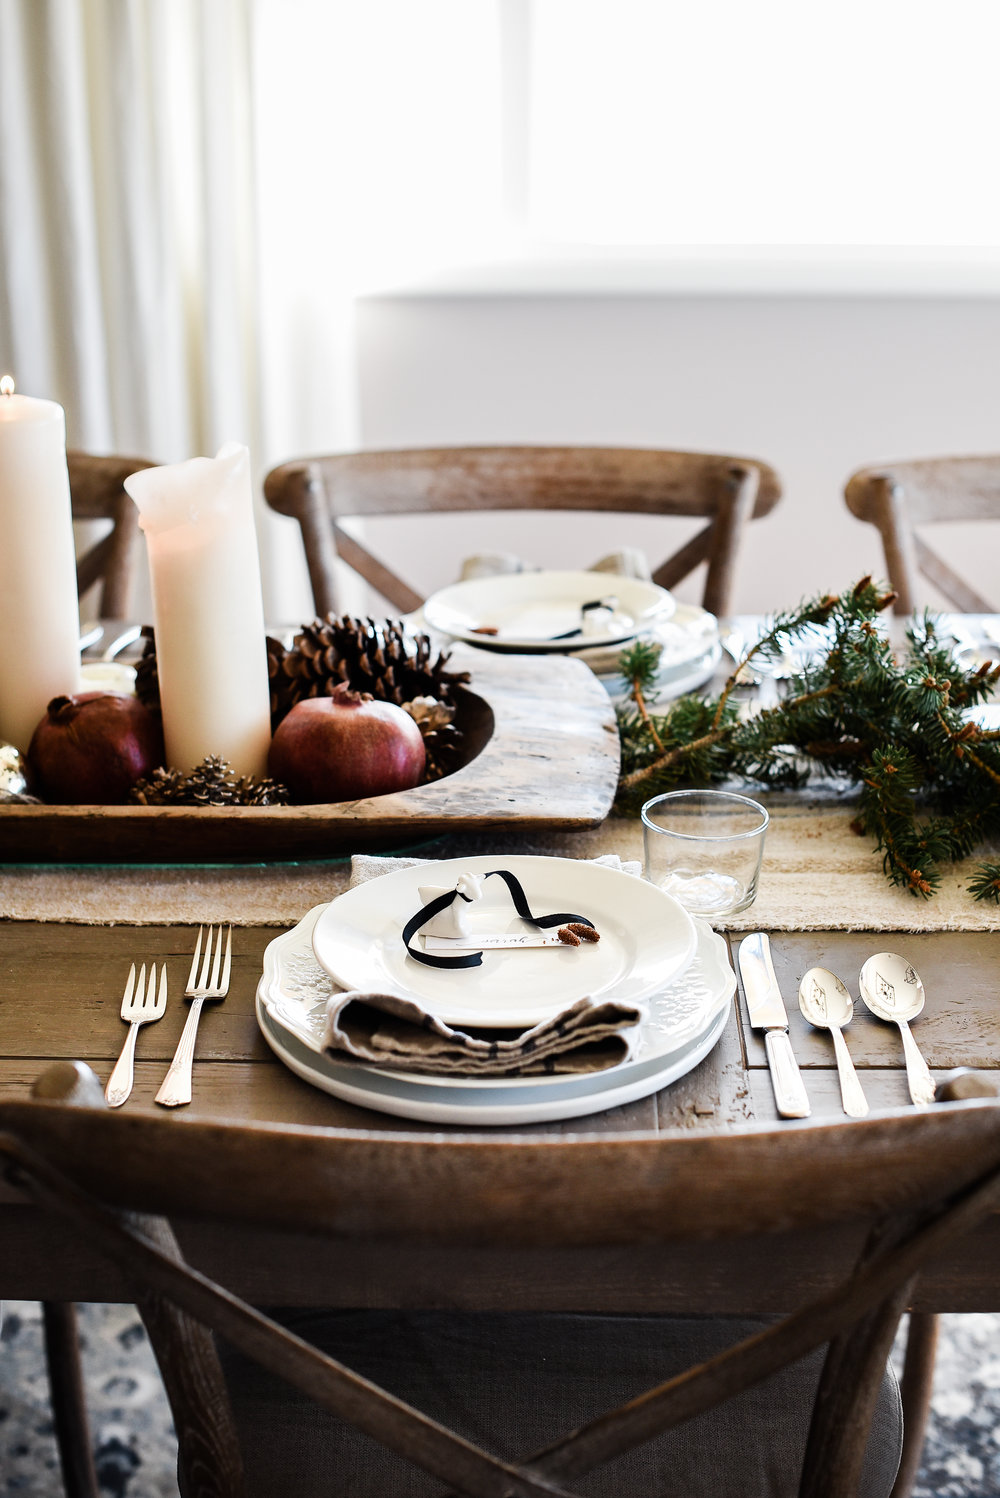 Farmhouse Christmas tablescape with goats!! | boxwoodavenue.com #christmasdecor #farmhousechristmas